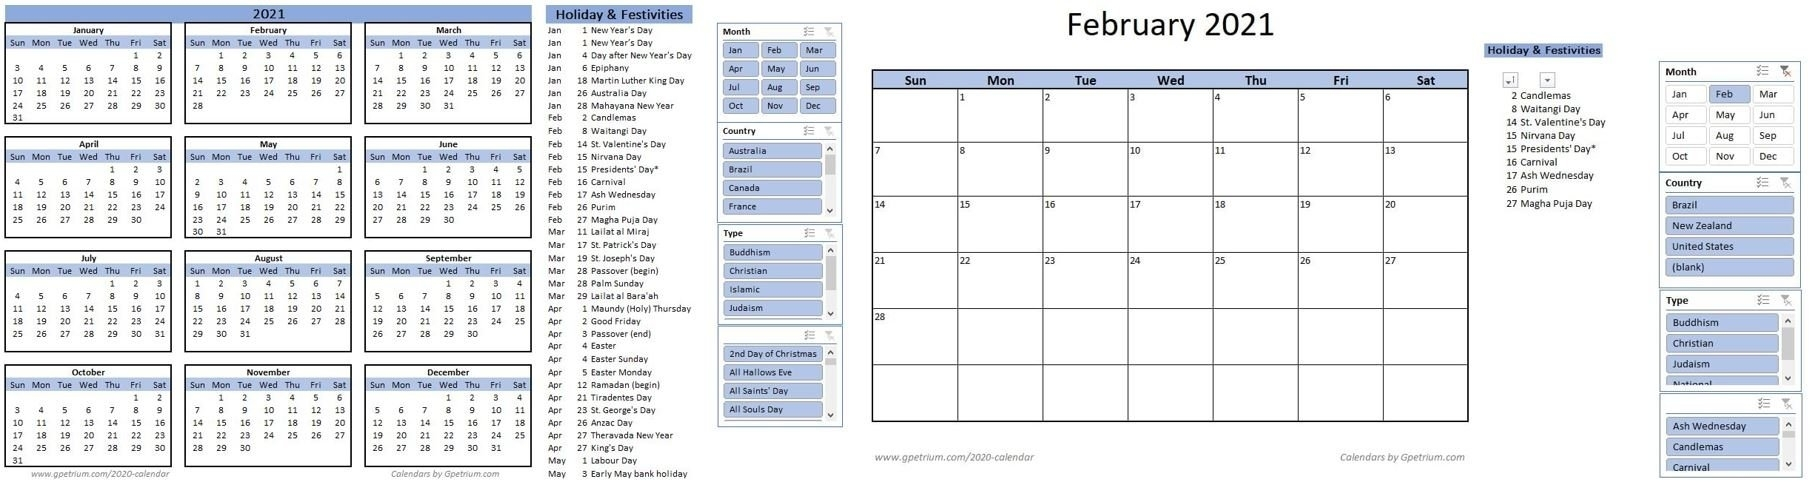 Get Calendar 2021 Excell Time Slots